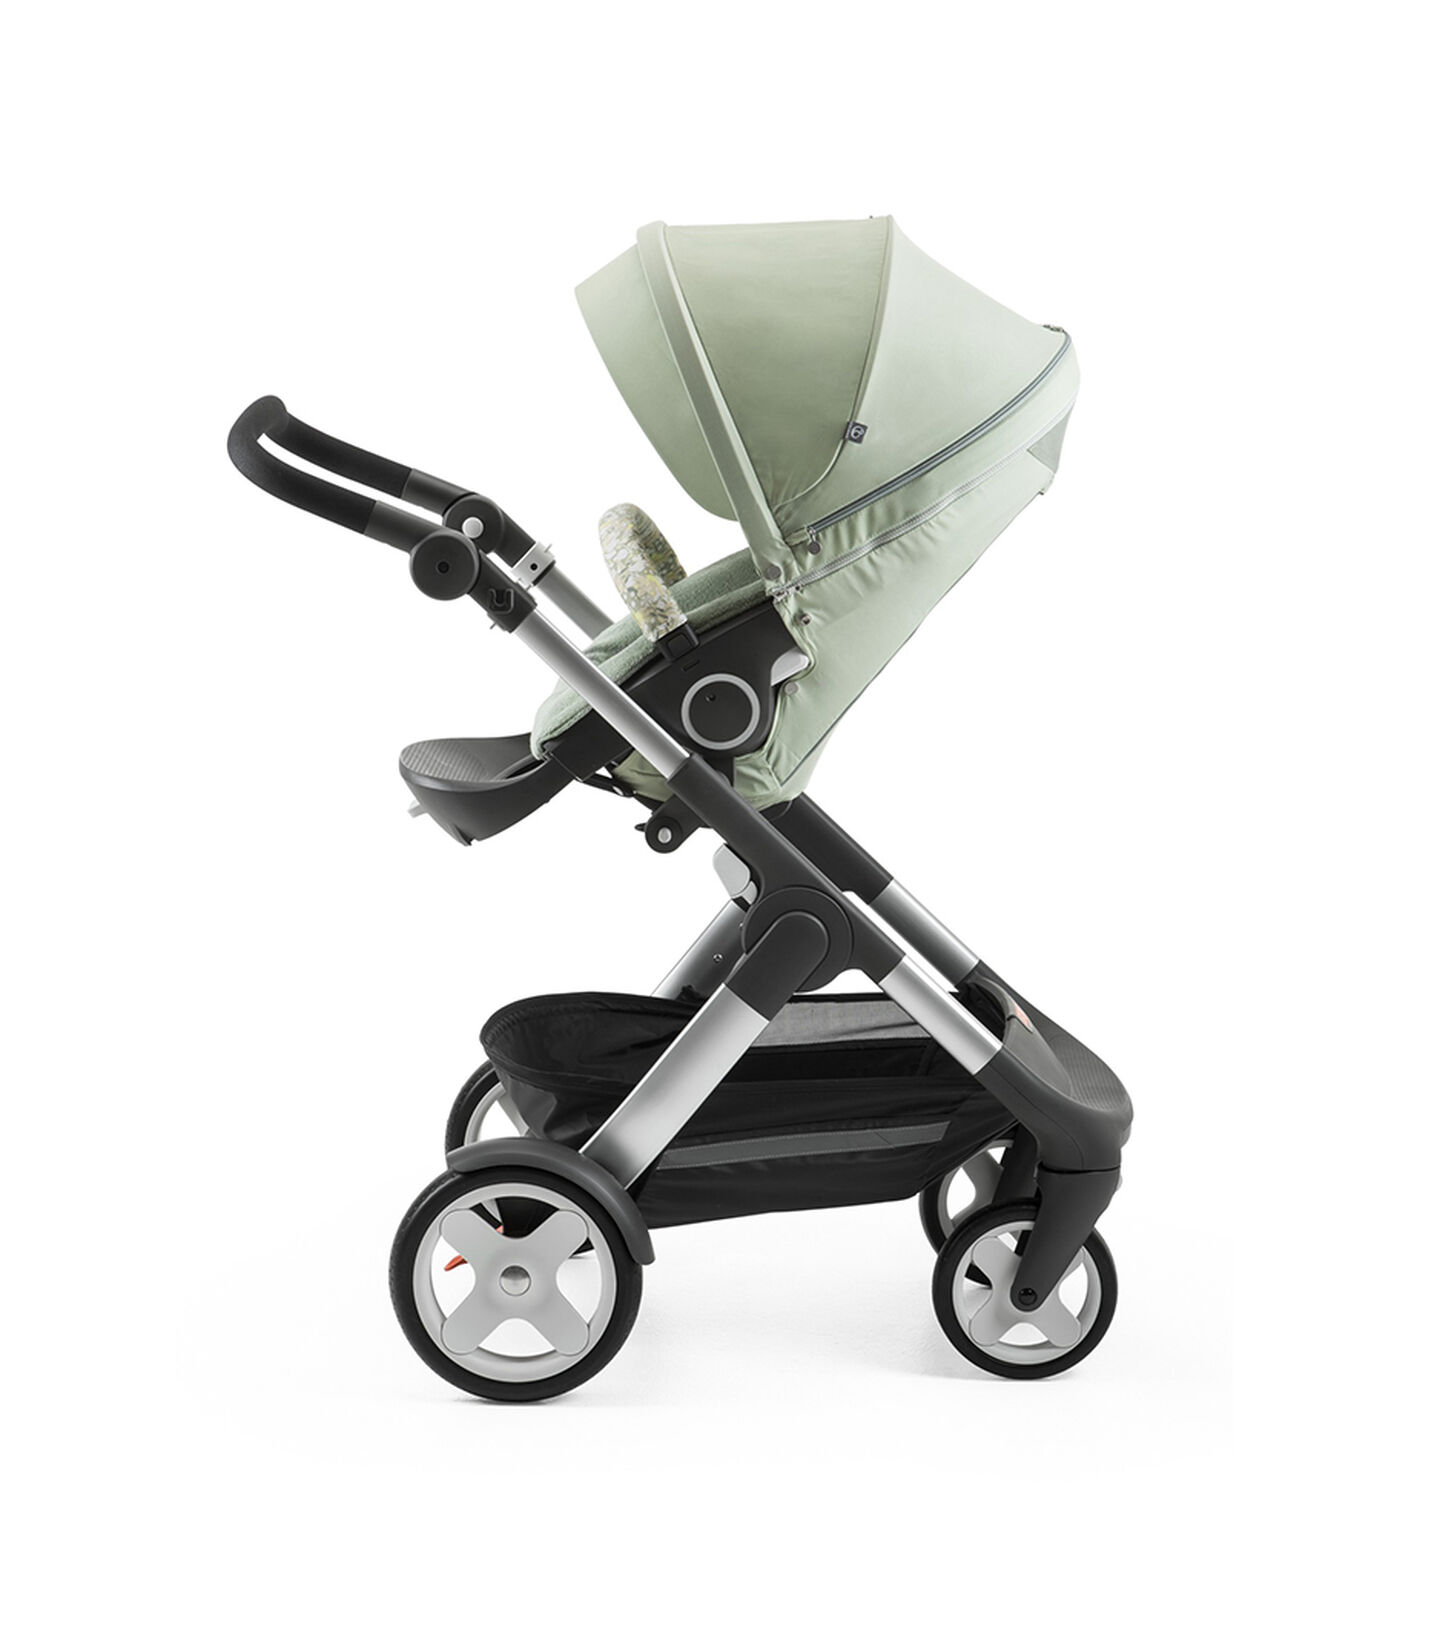 Stokke® Trailz™ with Stokke® Stroller Seat and Flora Green Summer Kit.